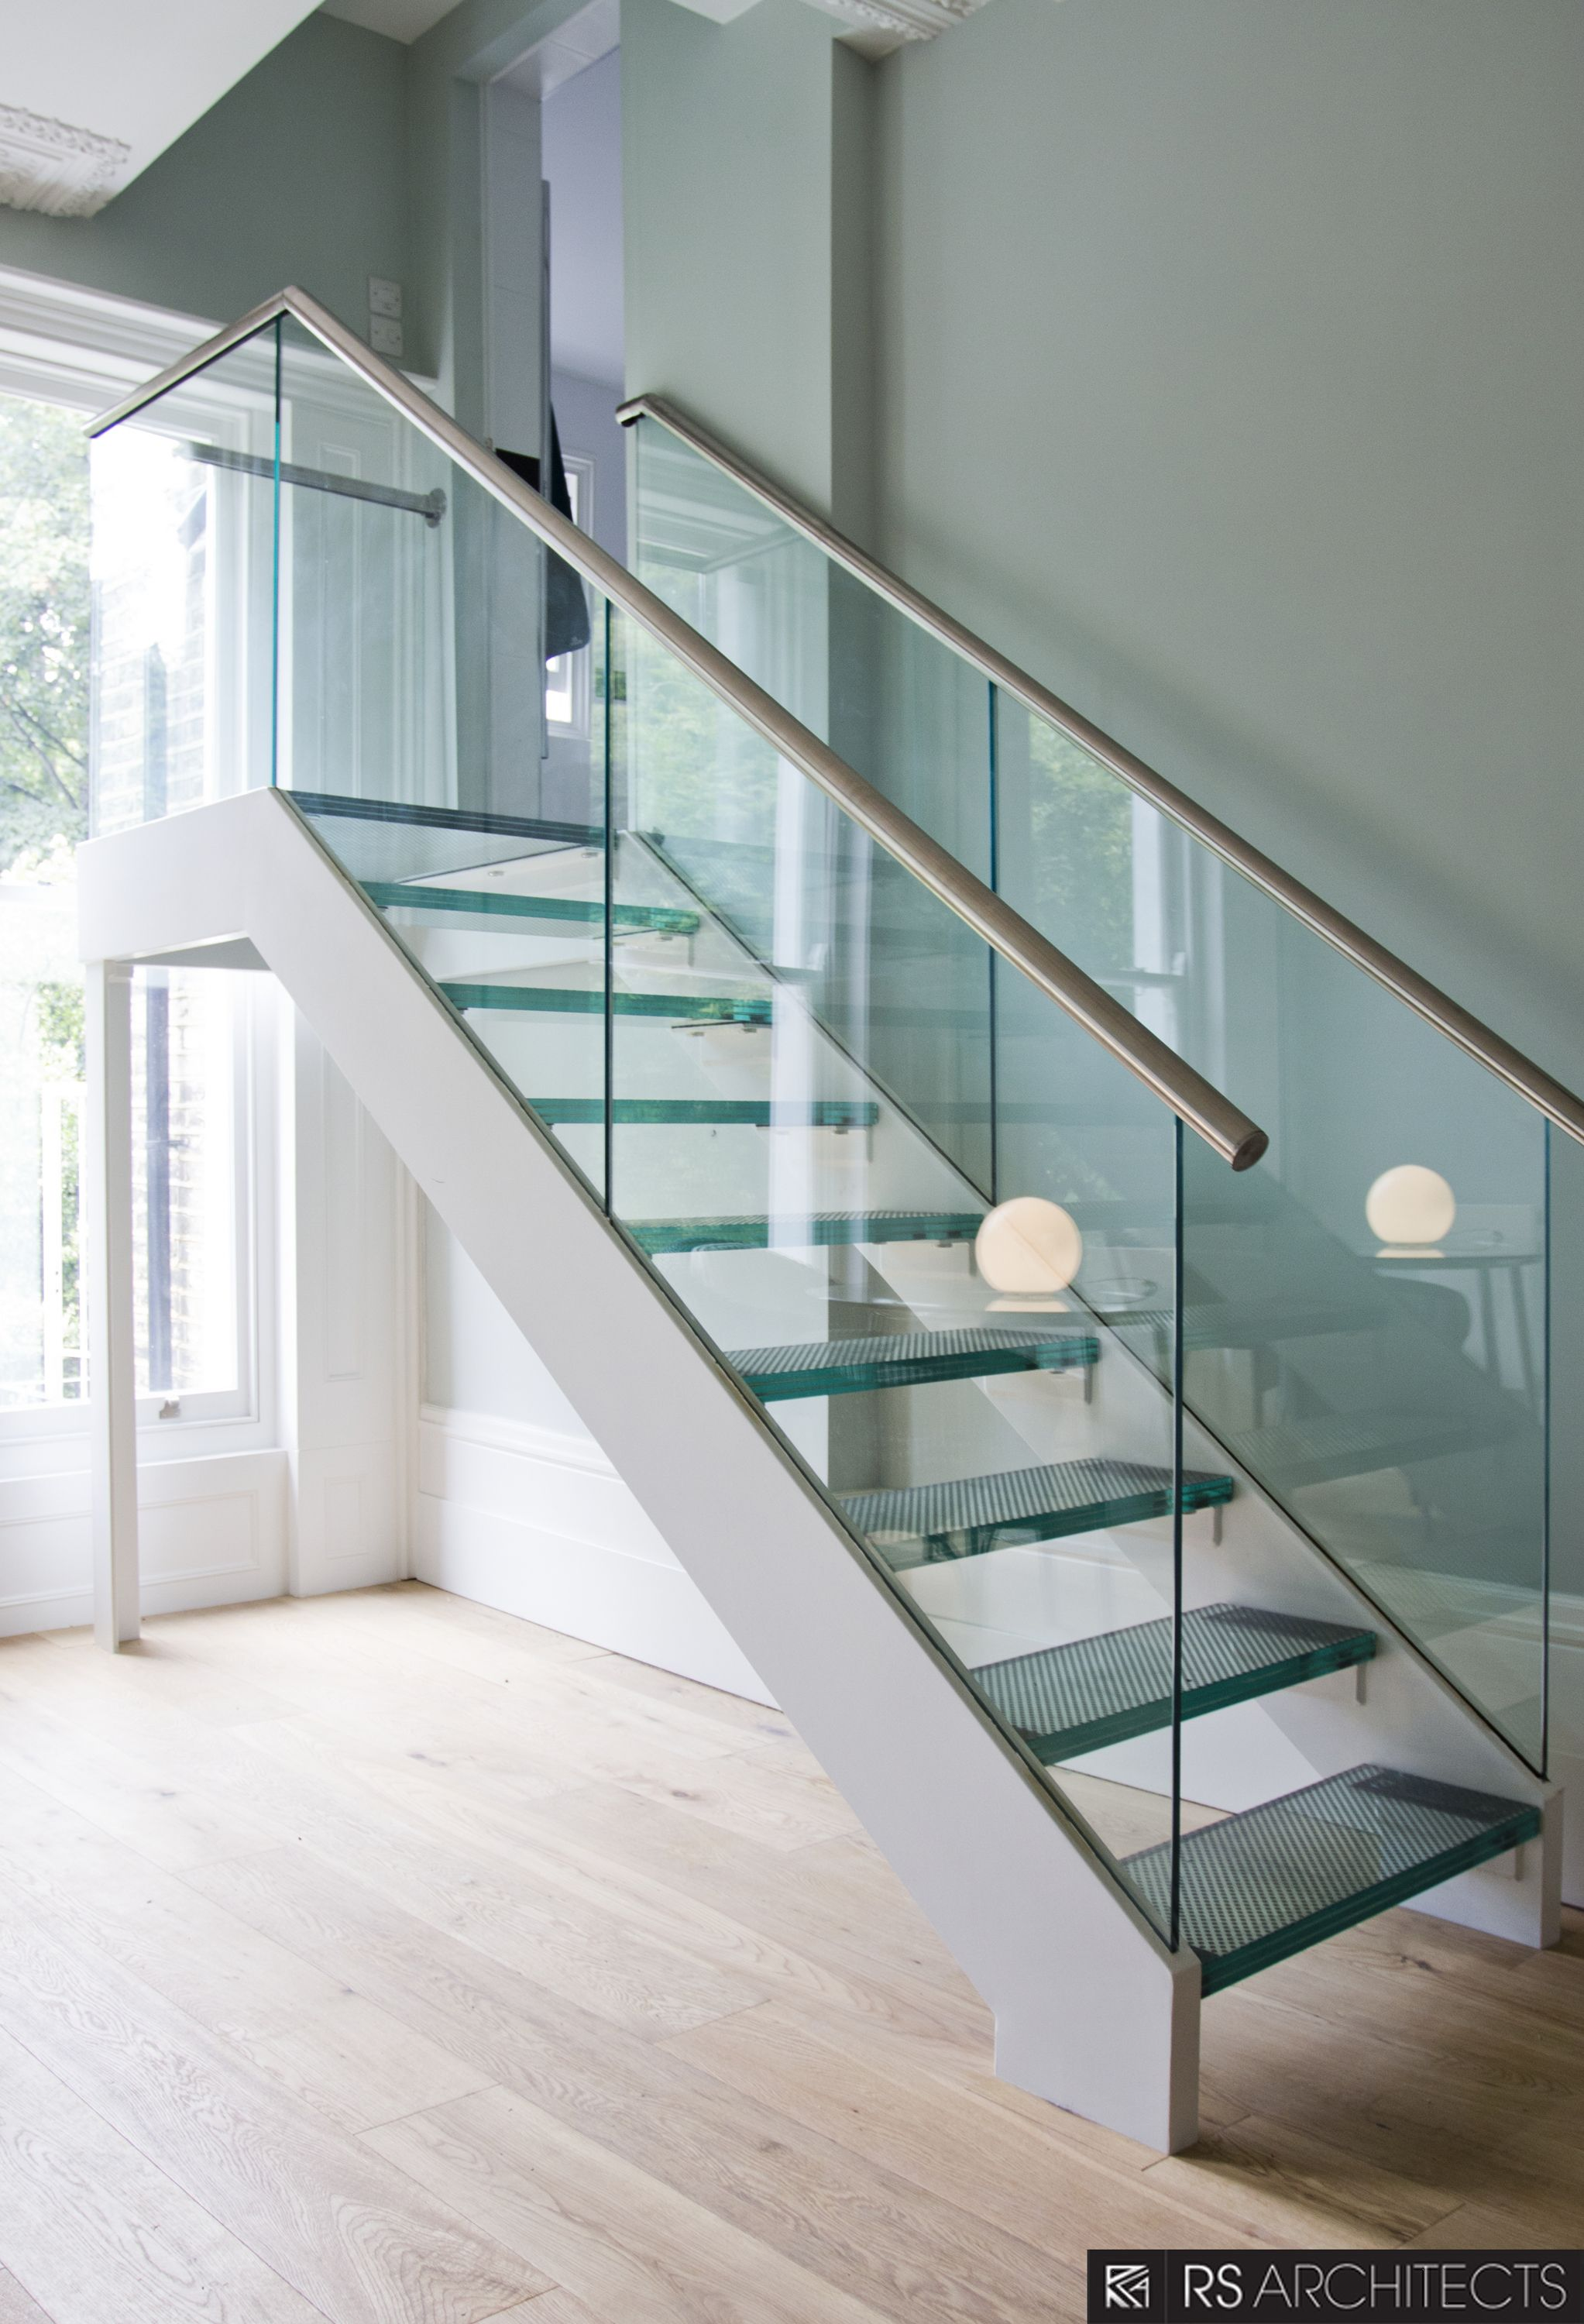 picturesque double chrome handrail with glass balustrade and landing glass stairs in modern open plan interior - Wall Railings Designs